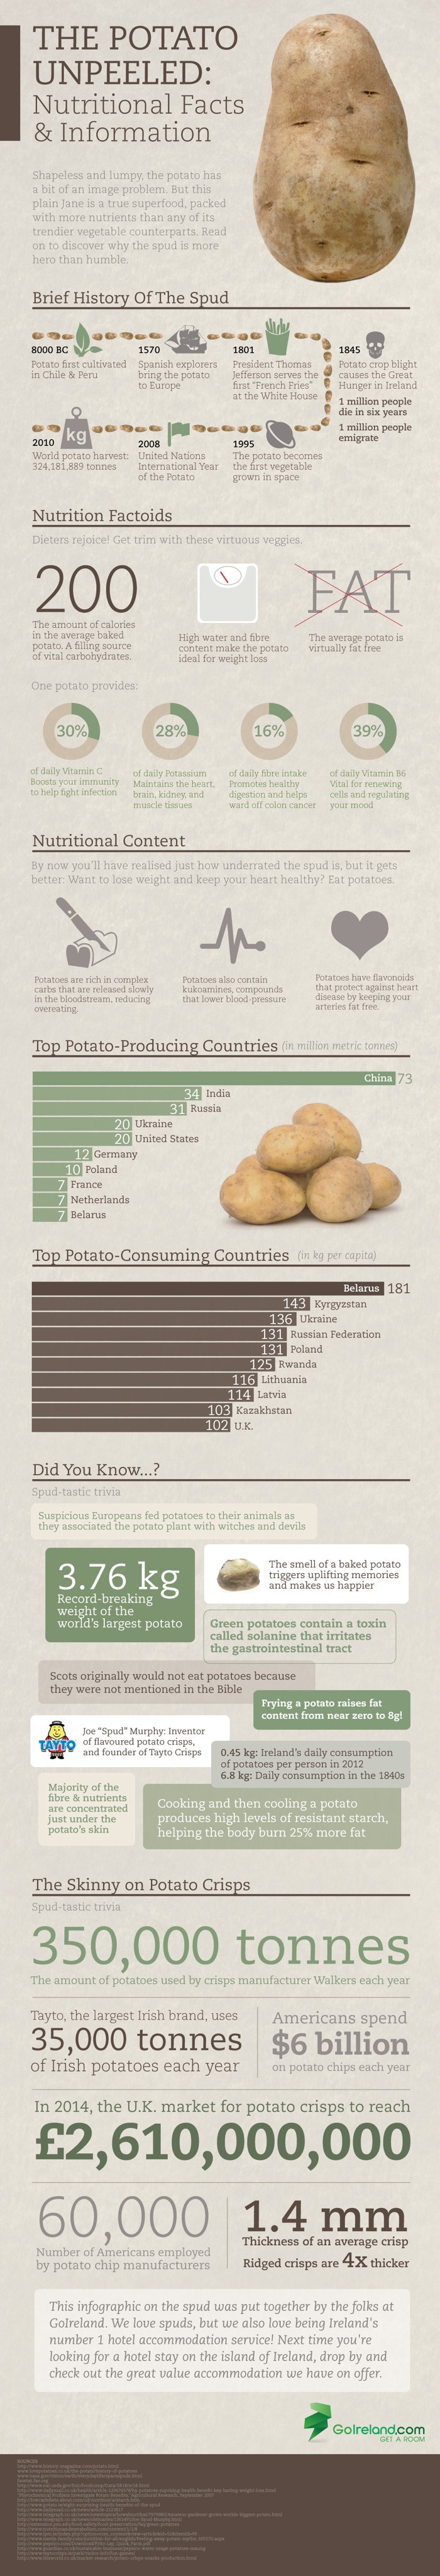 Potato Nutrition Information  Potato Infographic Nutritional Facts & Information